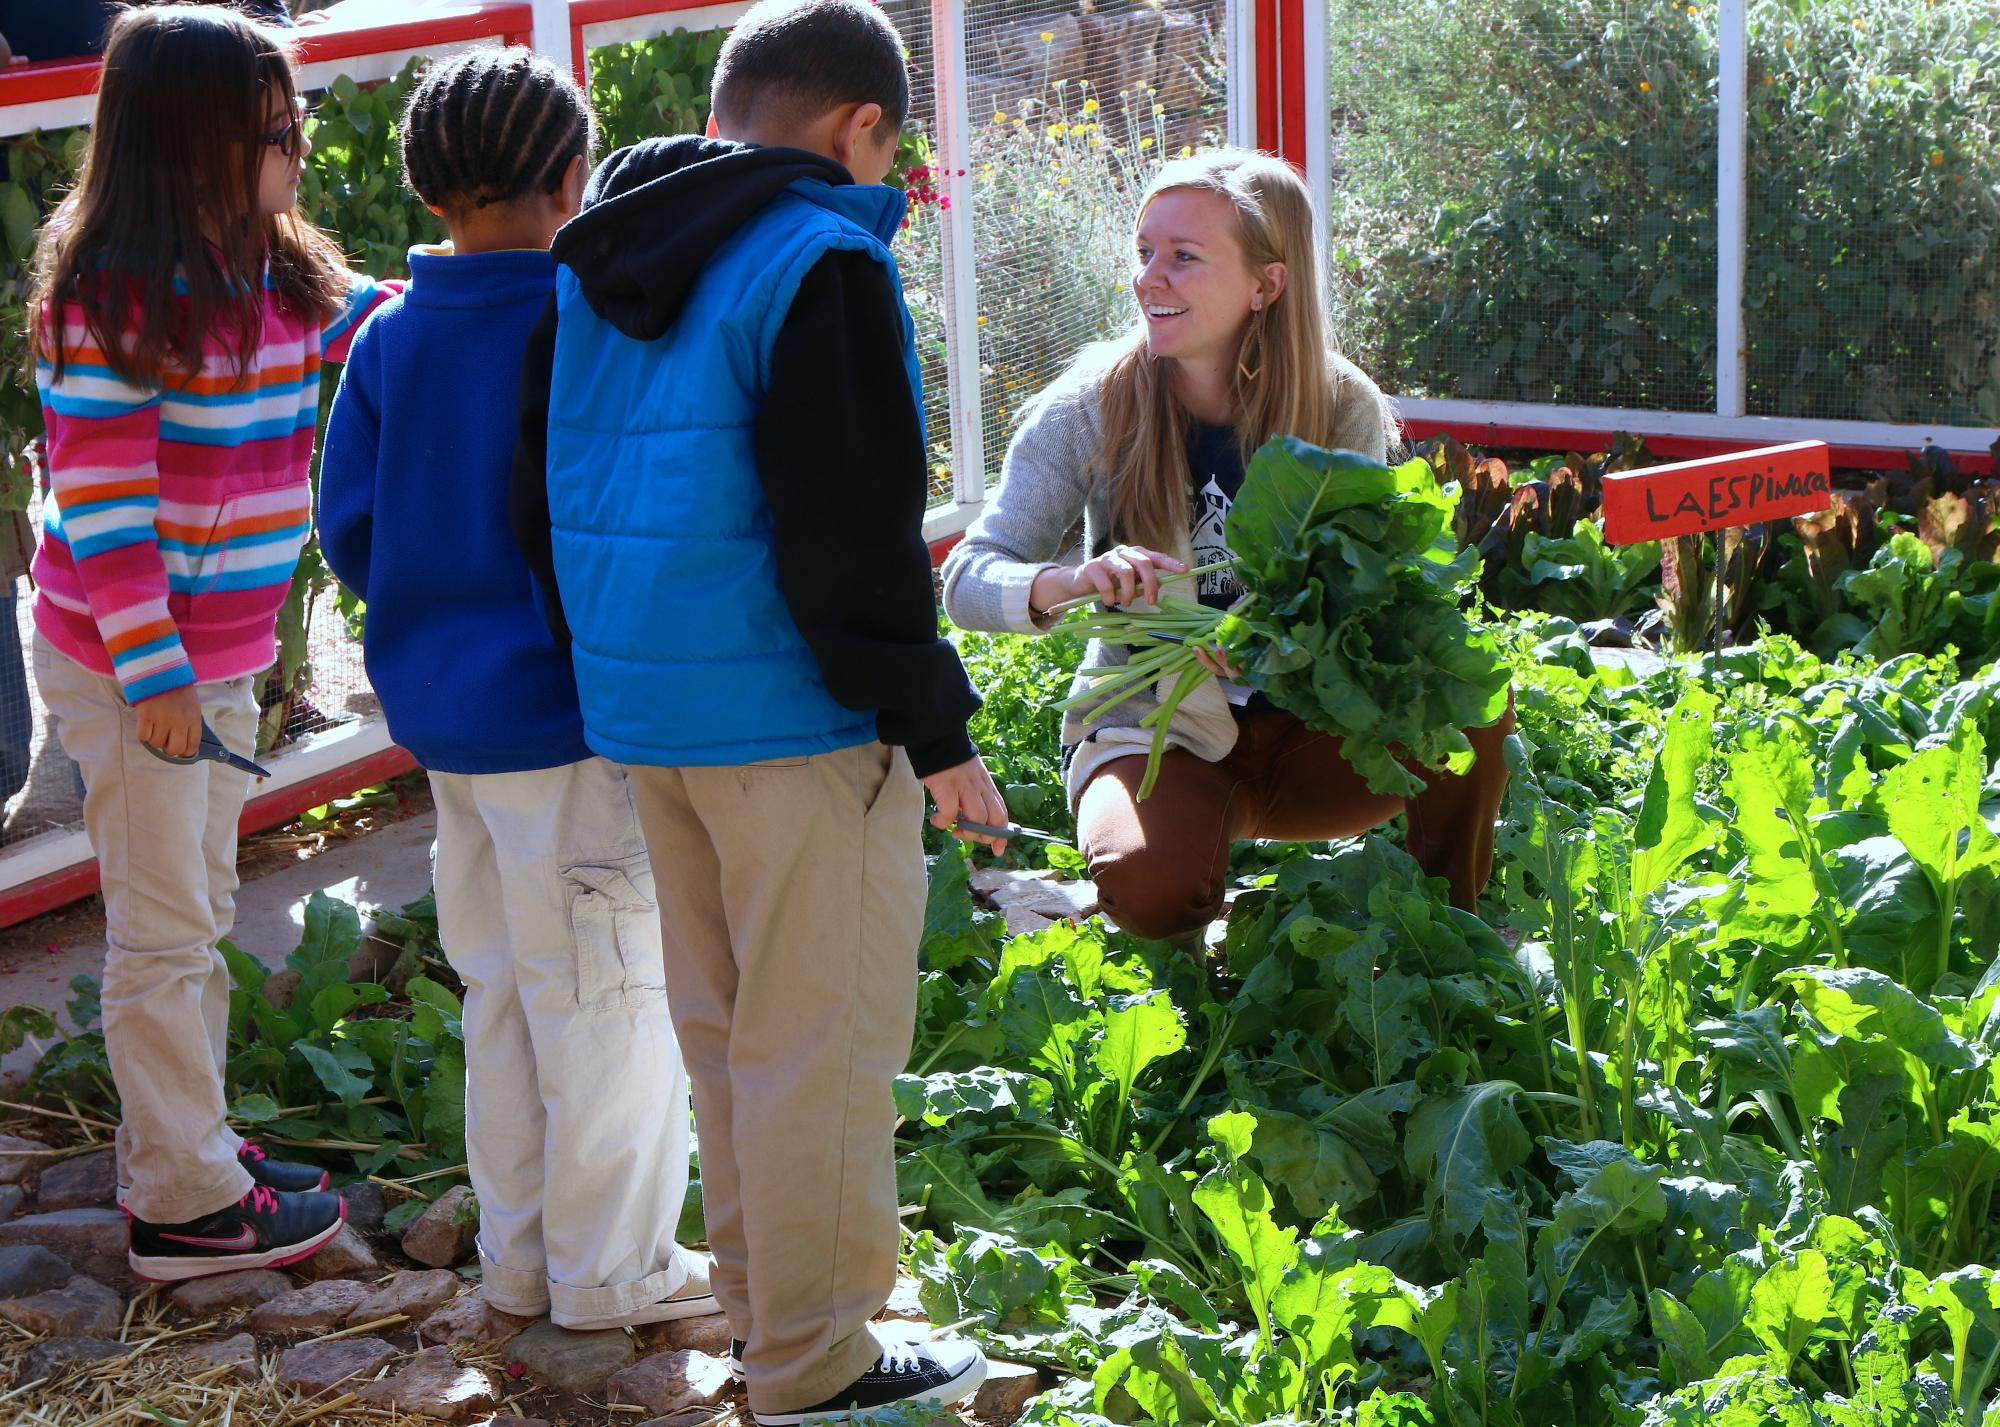 The UA is a top destination for students who want to learn about the connection among food, nutrition, society and health. Pictured is a UA student intern with the Community and School Garden Program, one of many hands-on opportunities for students who ar